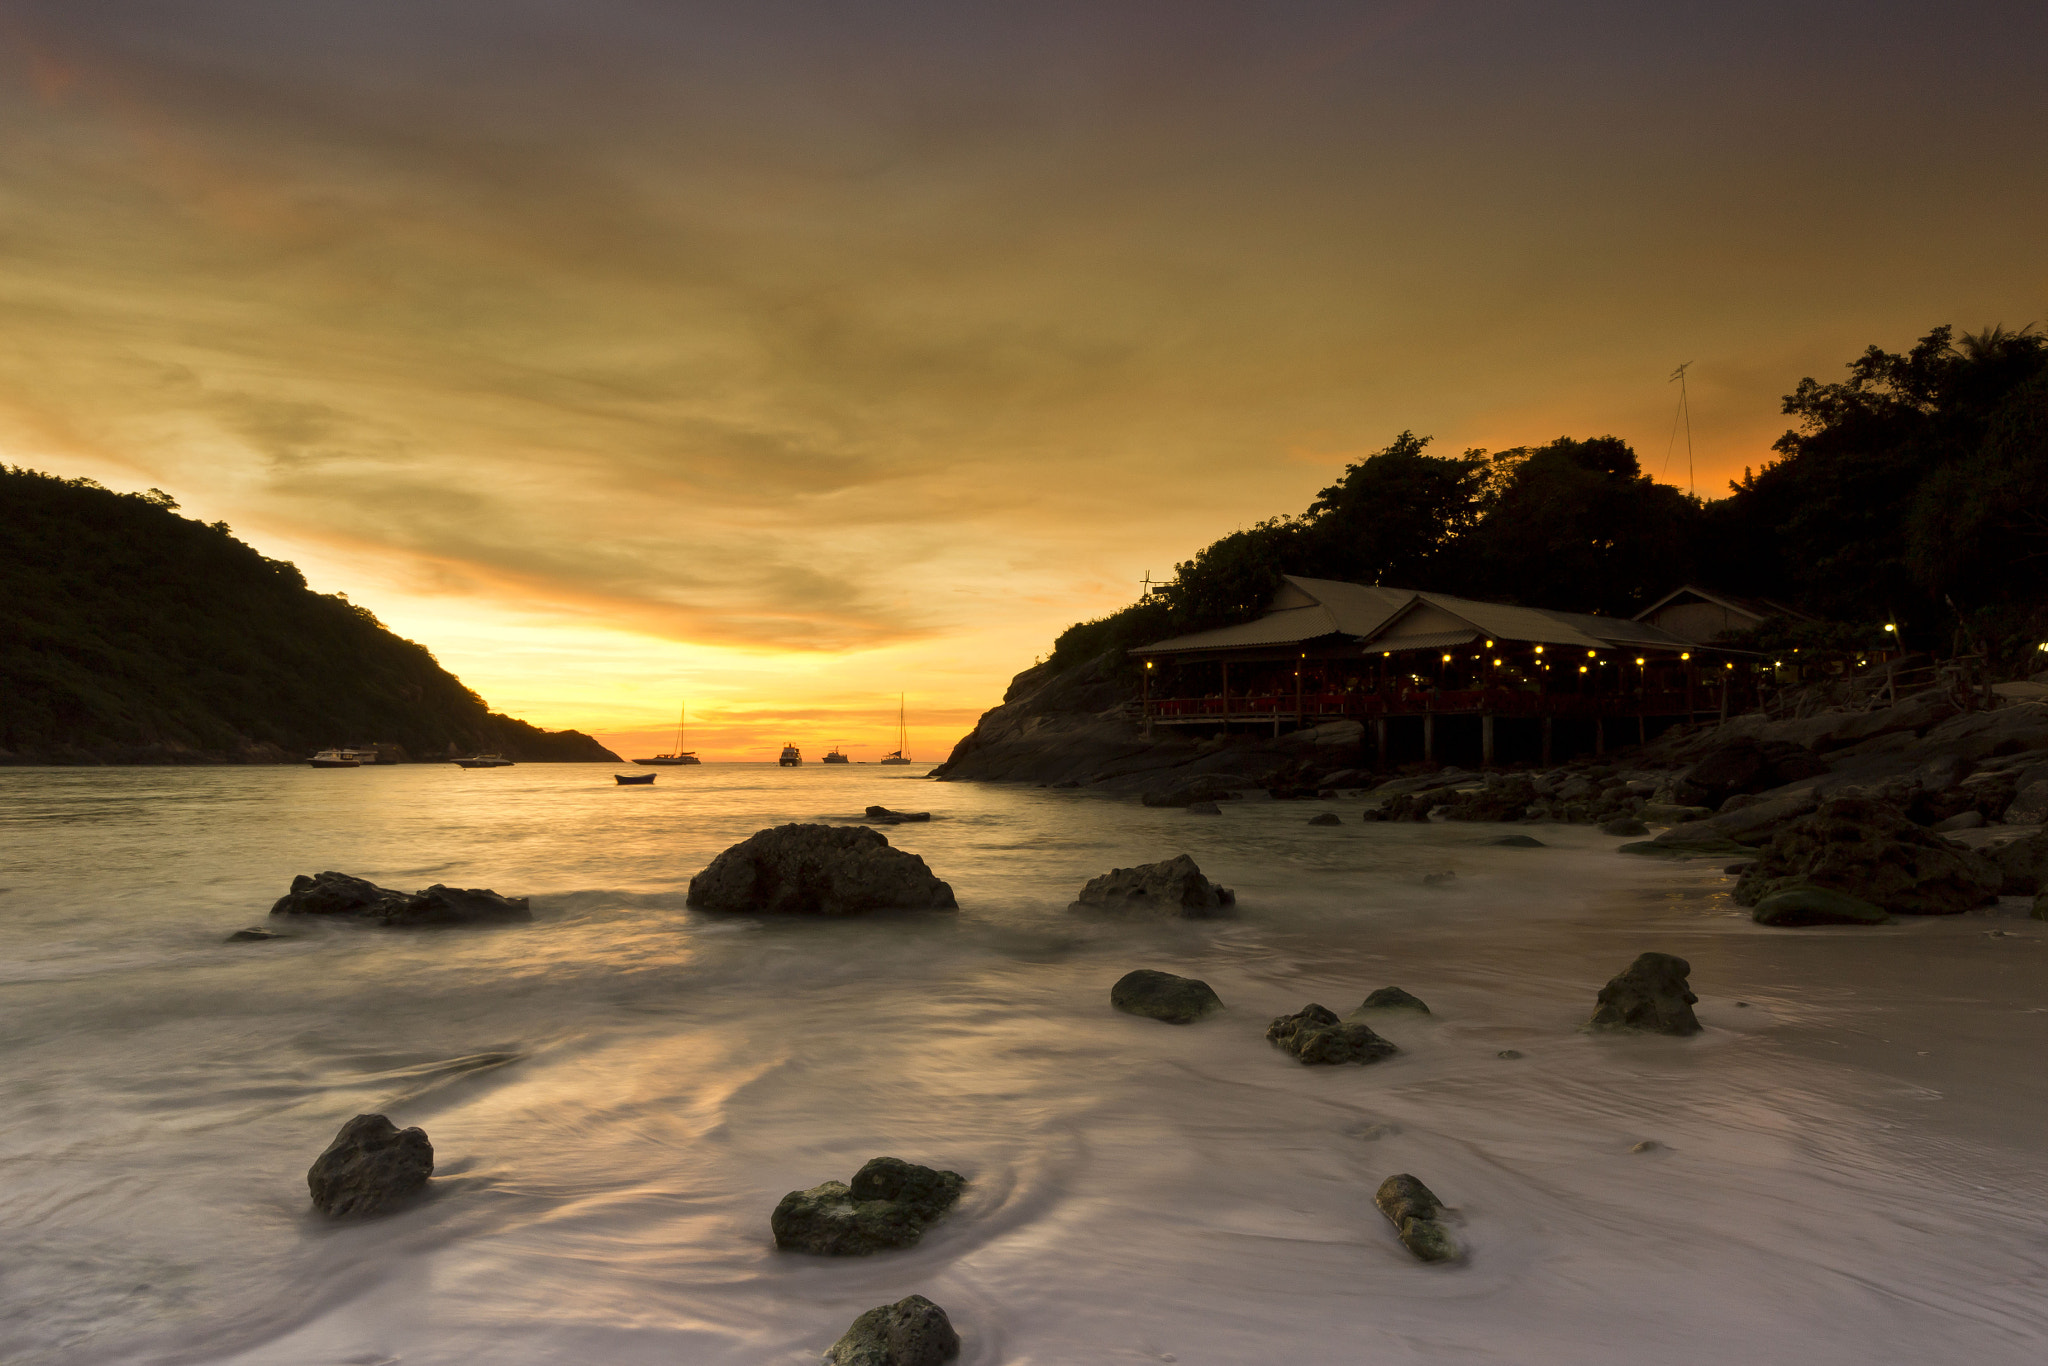 Photograph Ratcha Sunset by Russell Algar on 500px